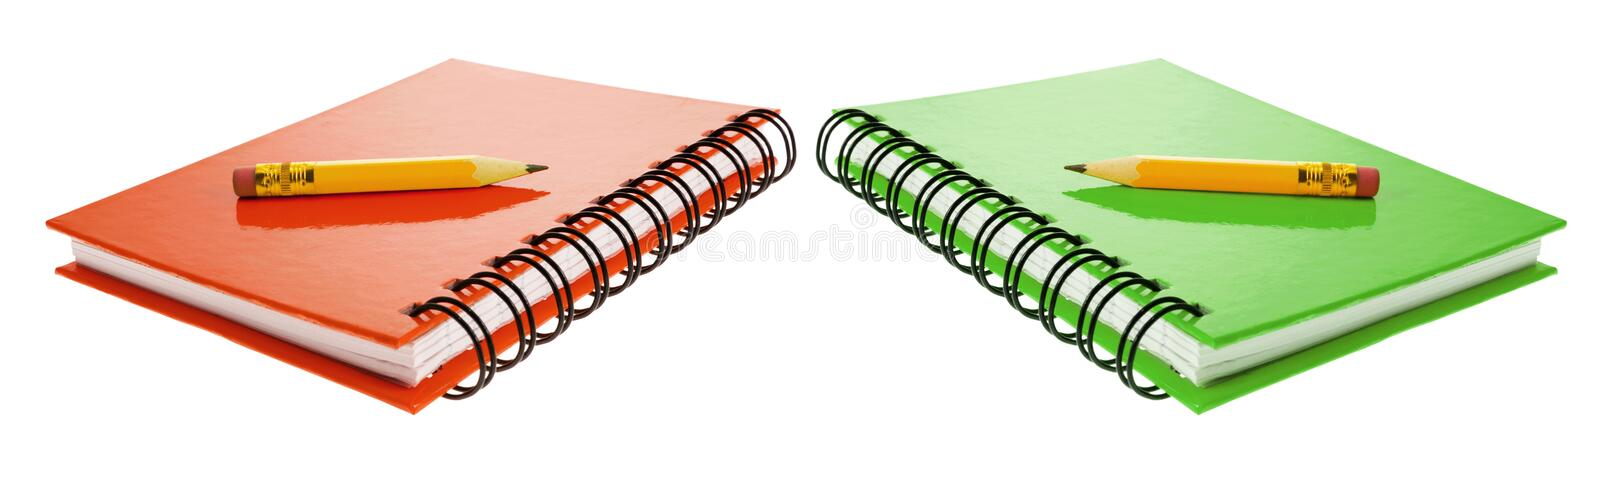 Short Pencils On Note Books Stock Image